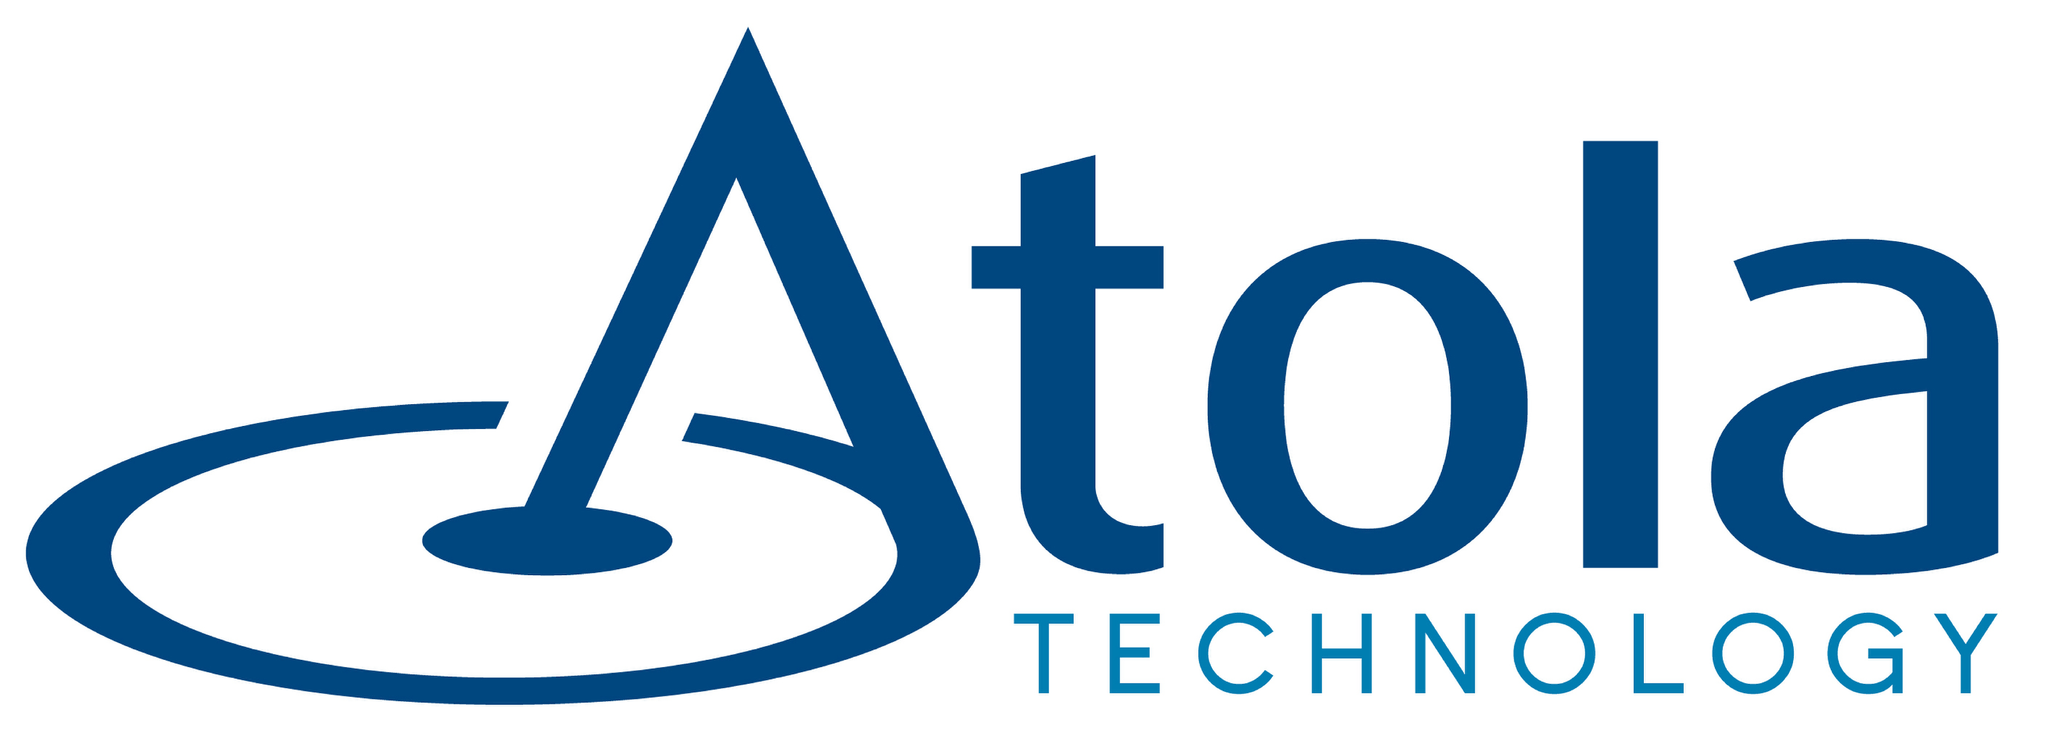 A-Forensic IT-Service GmbH